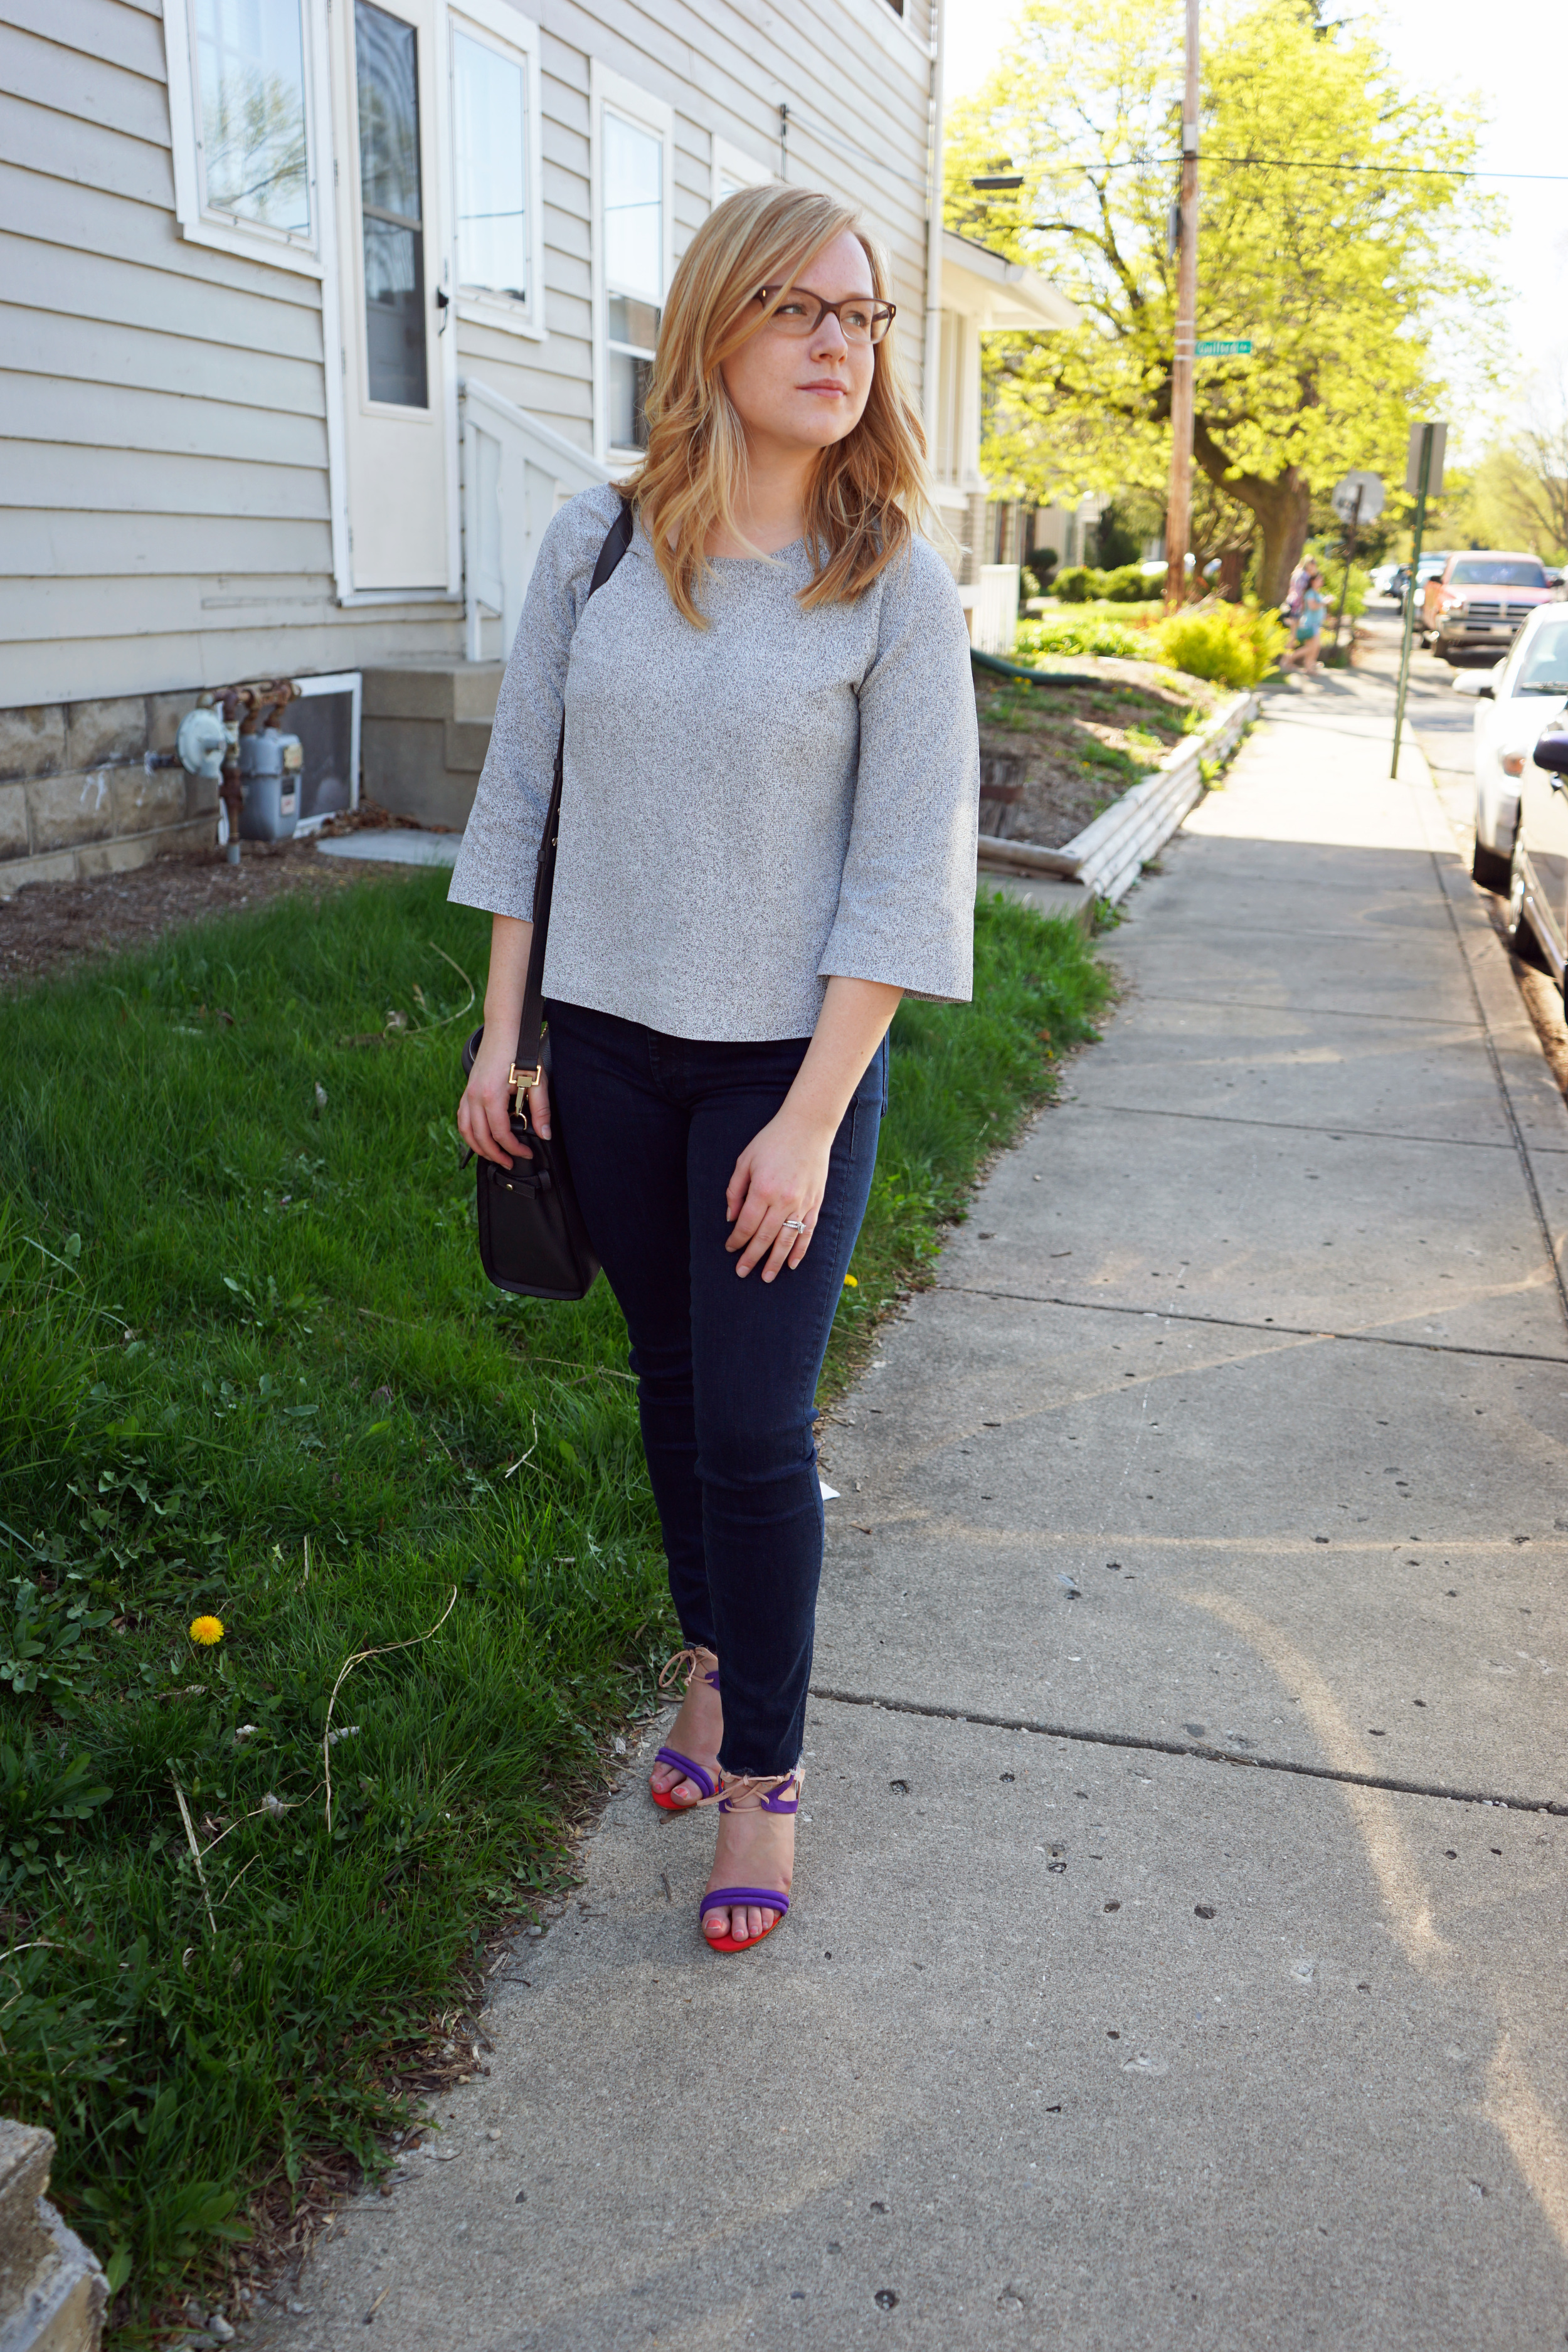 Schutz Delmano heels sandals, Ann Taylor LOFT Speckled Kimono sweater, MOTHER denim Looker High-Rise ankle fray jeans, Luana Italy paley satchel - Maggie a la Mode